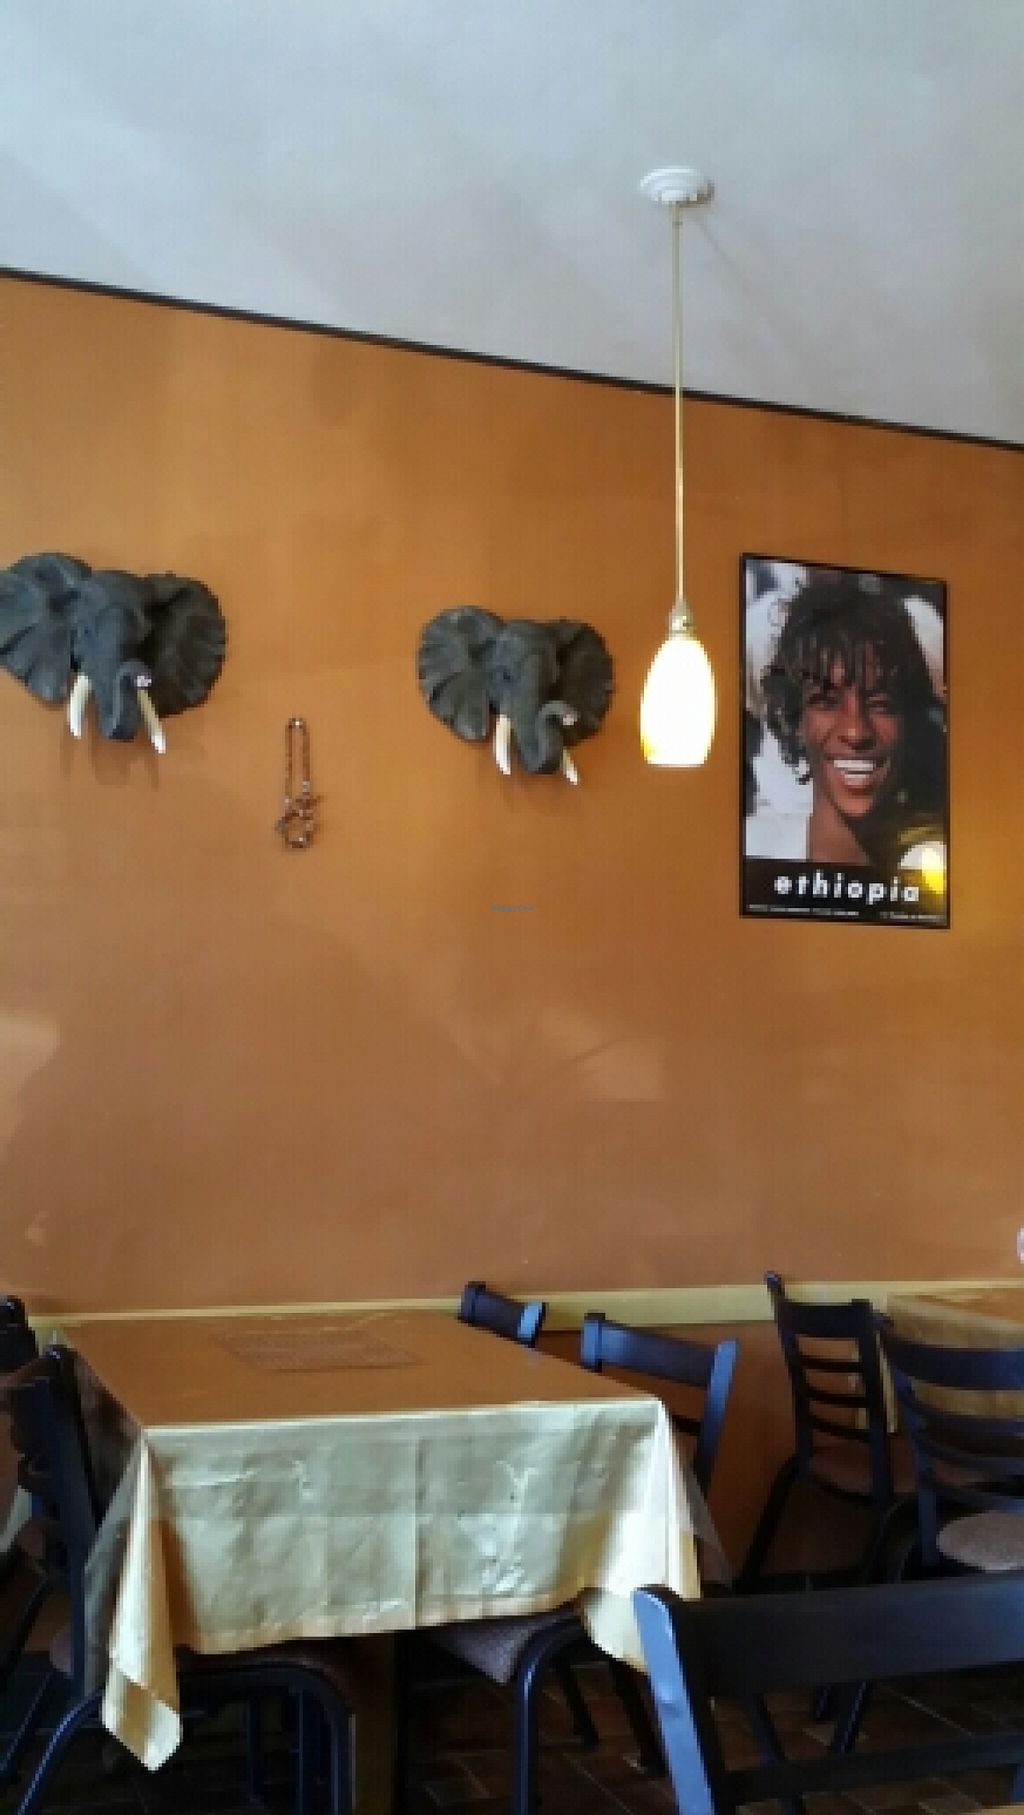 """Photo of Fasika Ethiopian Restaurant  by <a href=""""/members/profile/catbone"""">catbone</a> <br/>Ethiopia & beautiful elephant carvings <br/> March 16, 2016  - <a href='/contact/abuse/image/54385/140183'>Report</a>"""